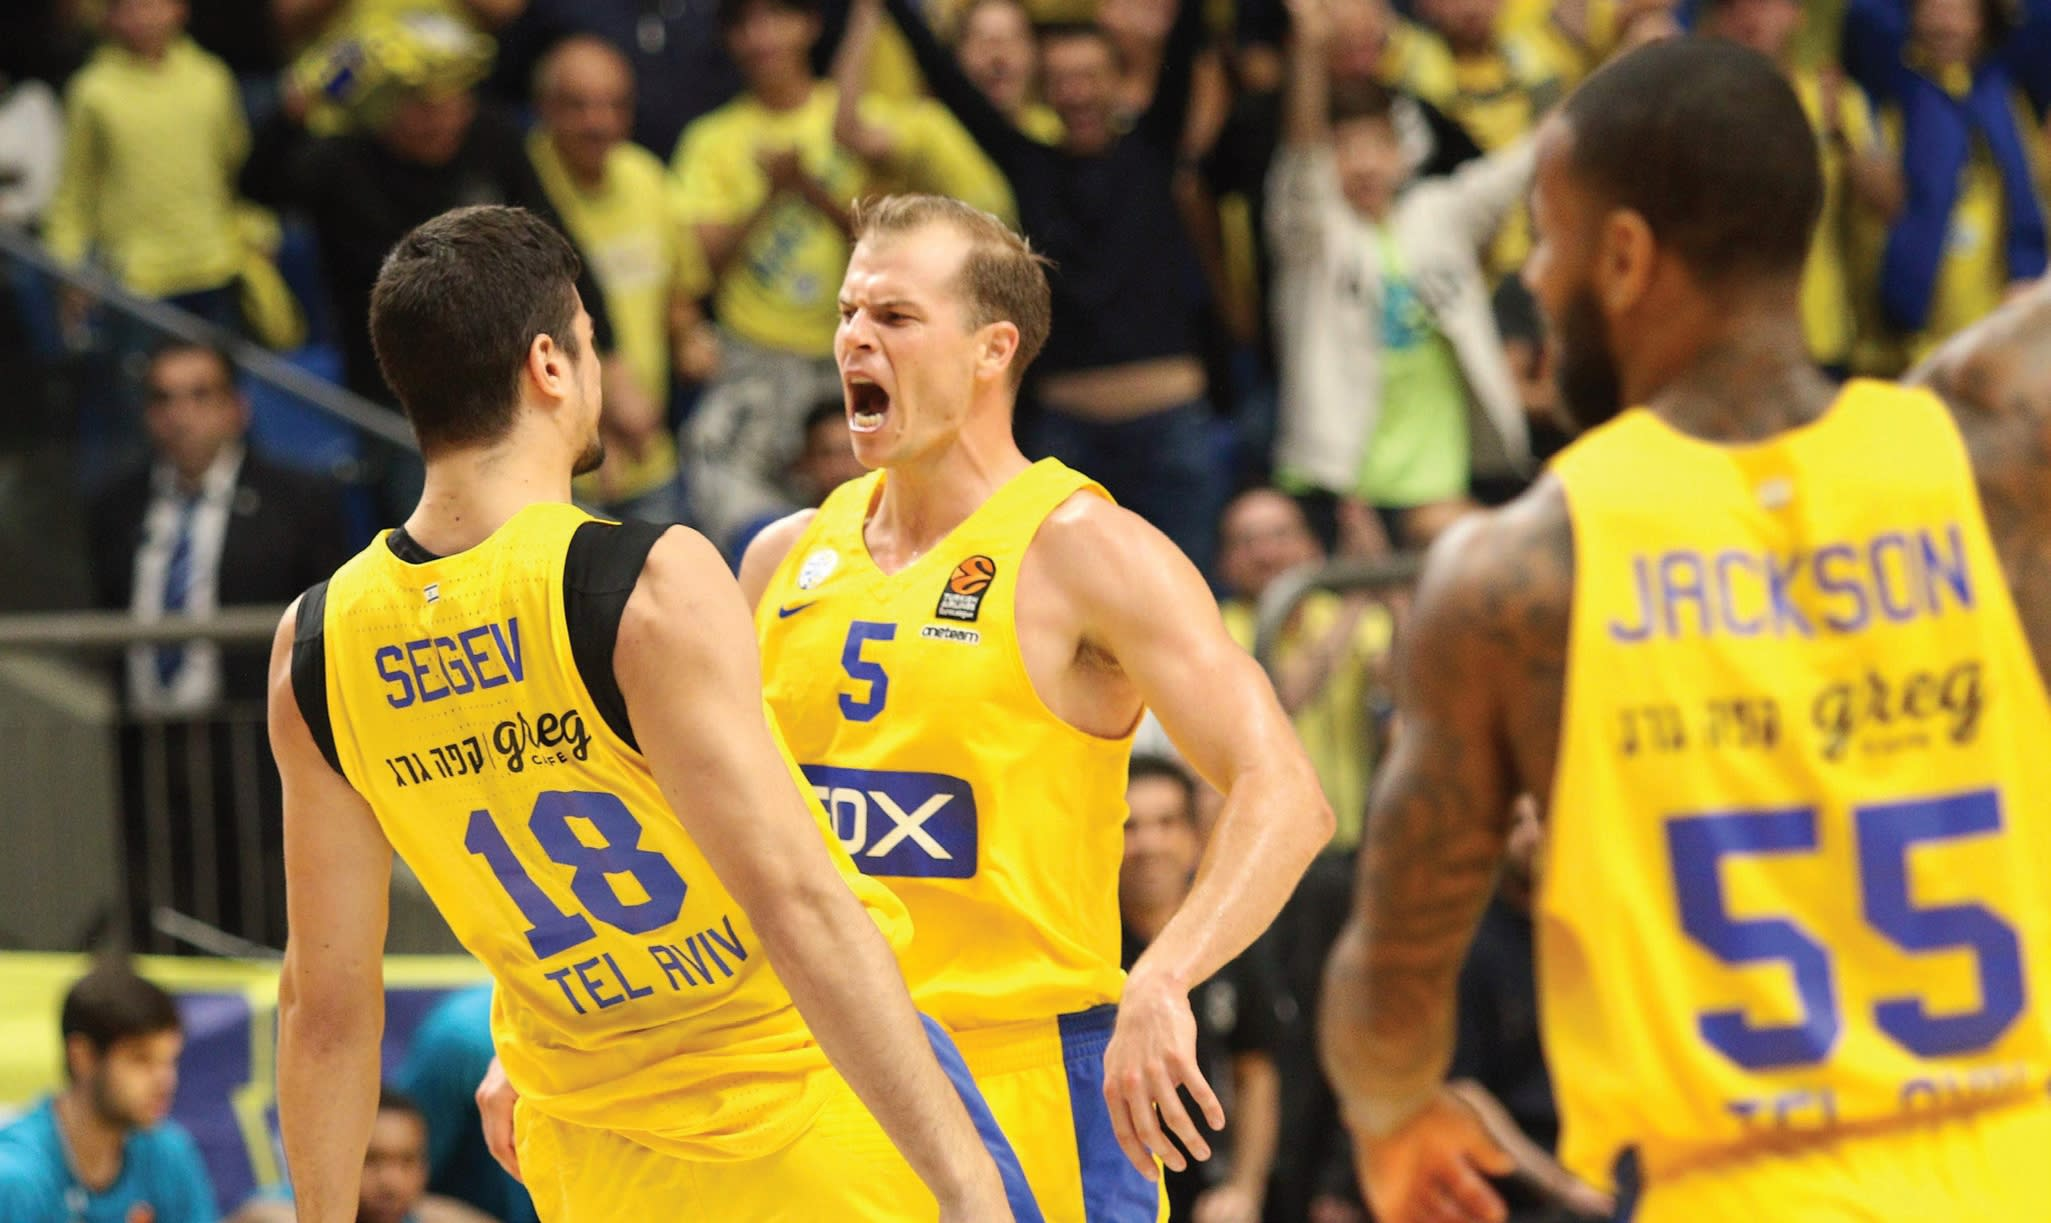 Maccabi Tel Aviv forward Michael Roll celebrates with teammate Itay Segev during a win over Real Madrid at Yad Eliyahu Arena in Tel Aviv (Adi Avishai)